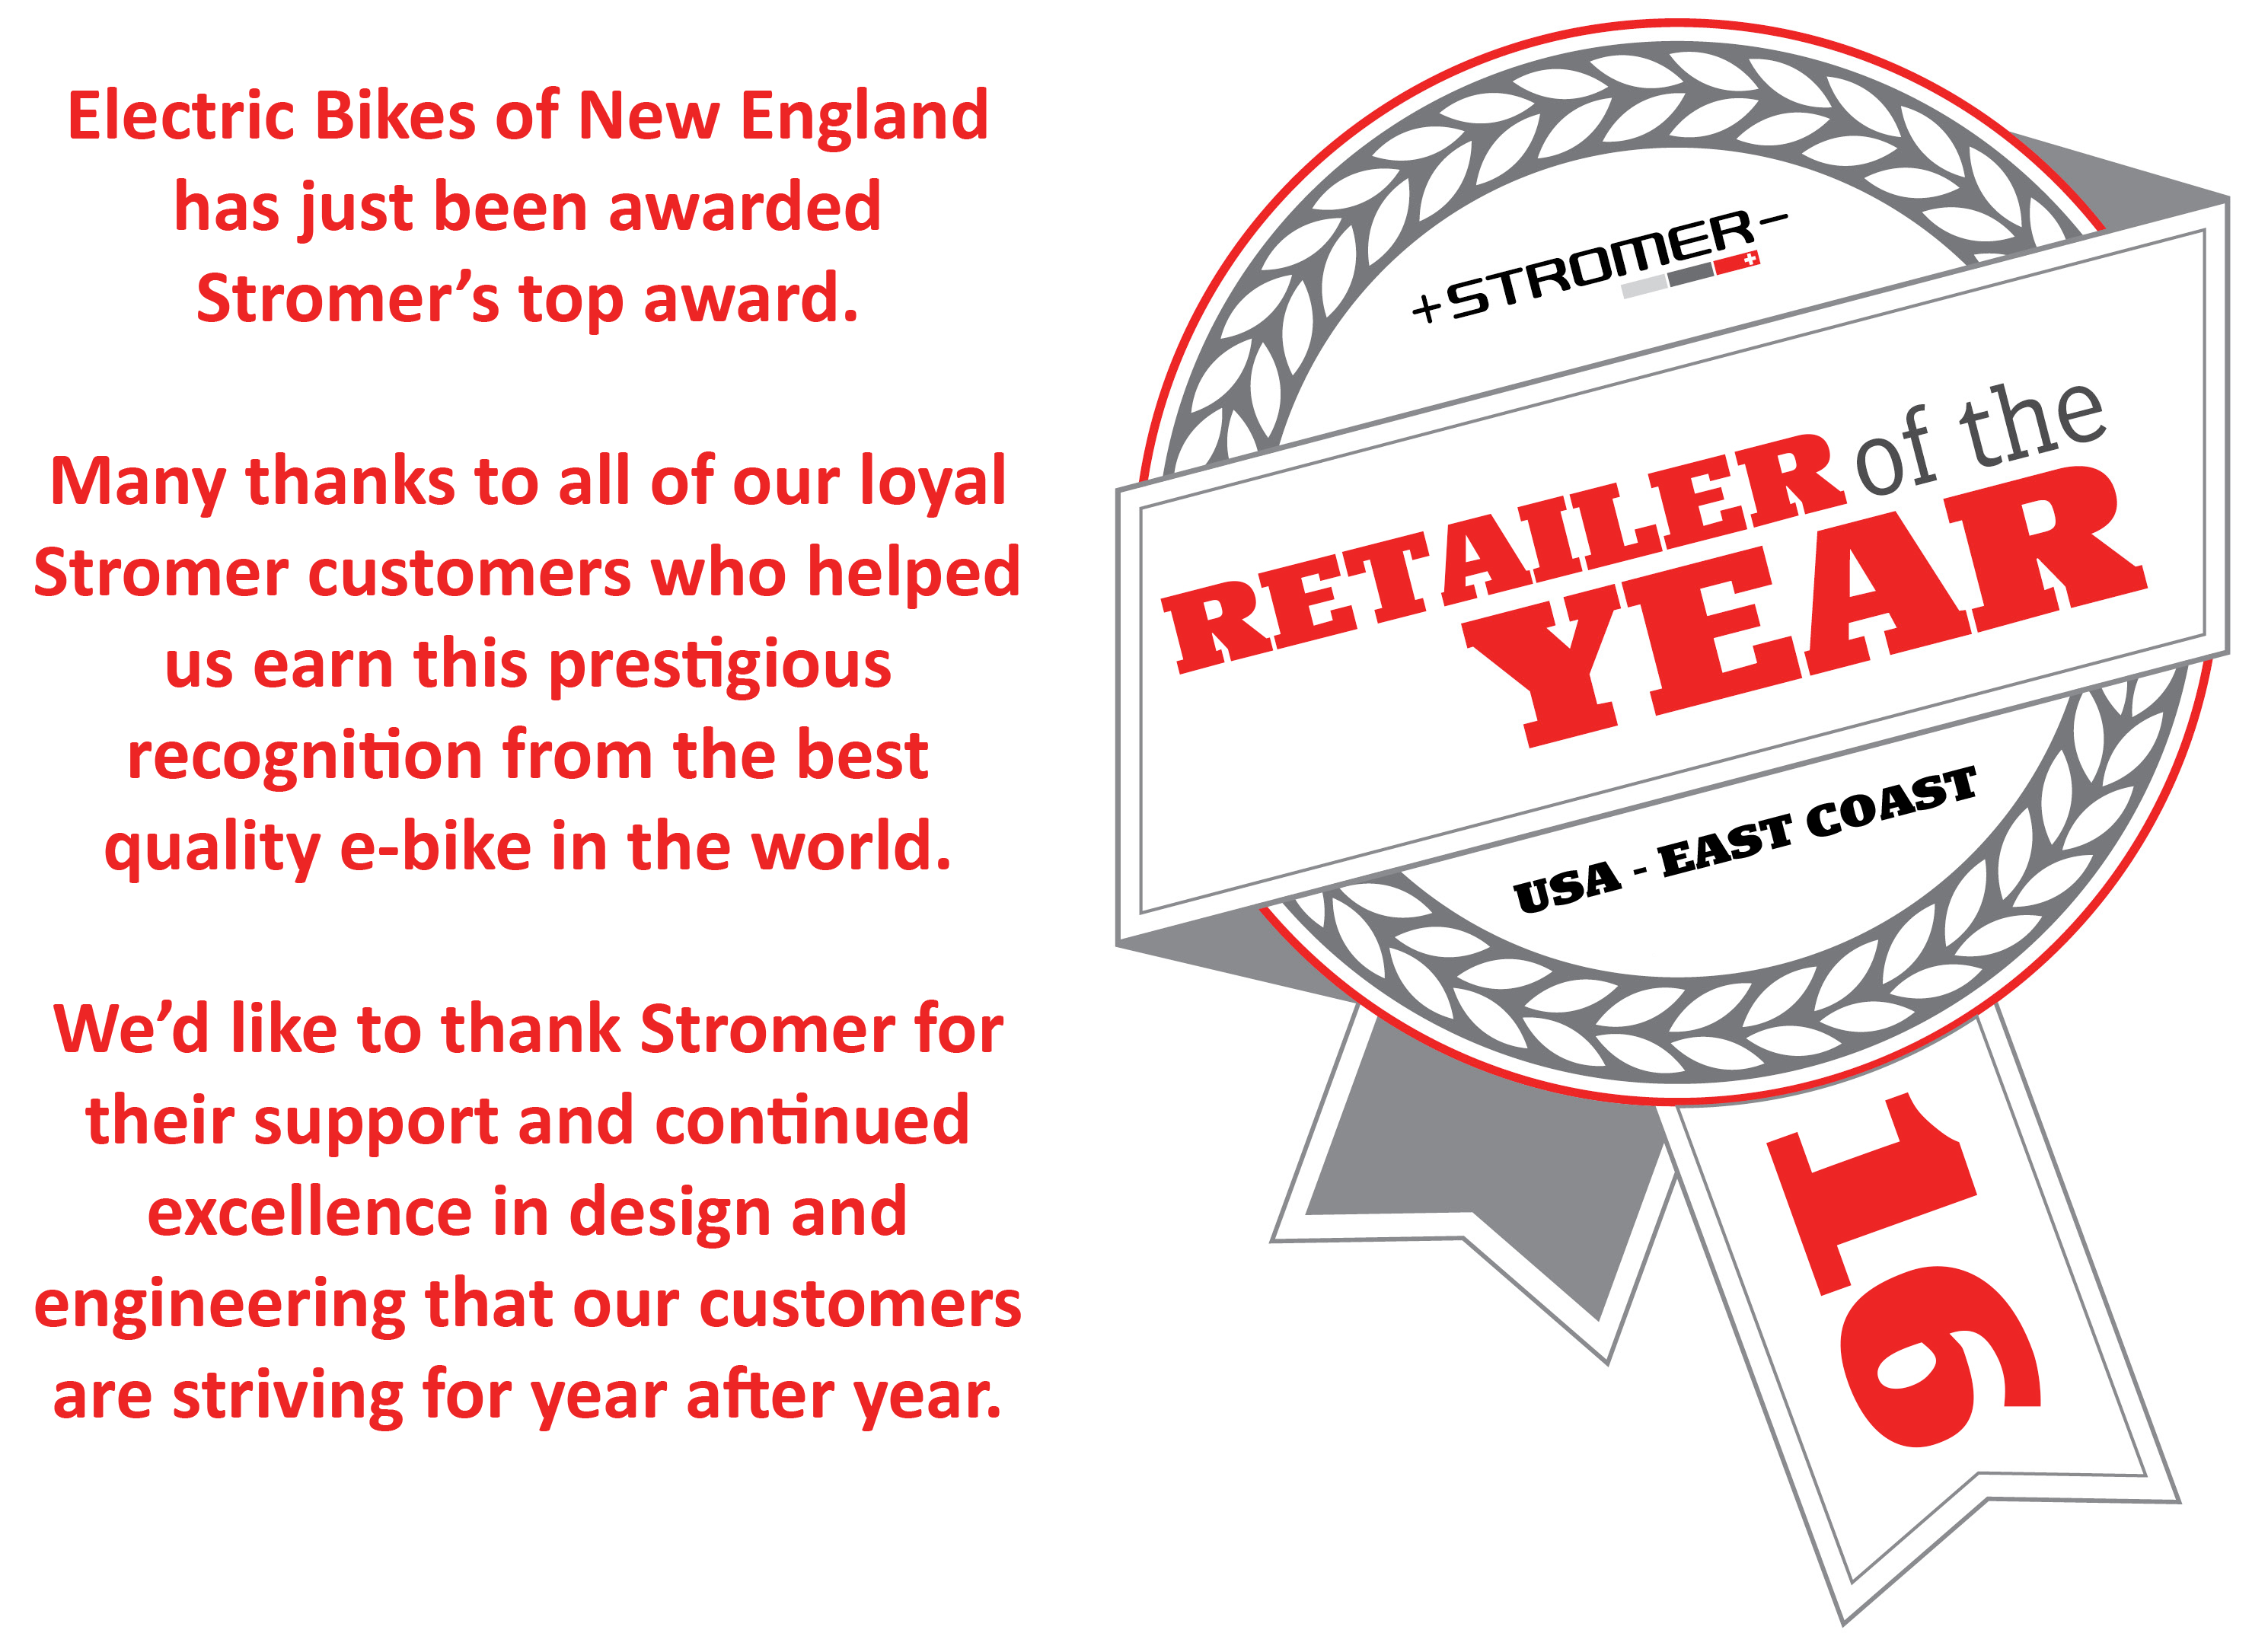 Stromer Retailer of the Year